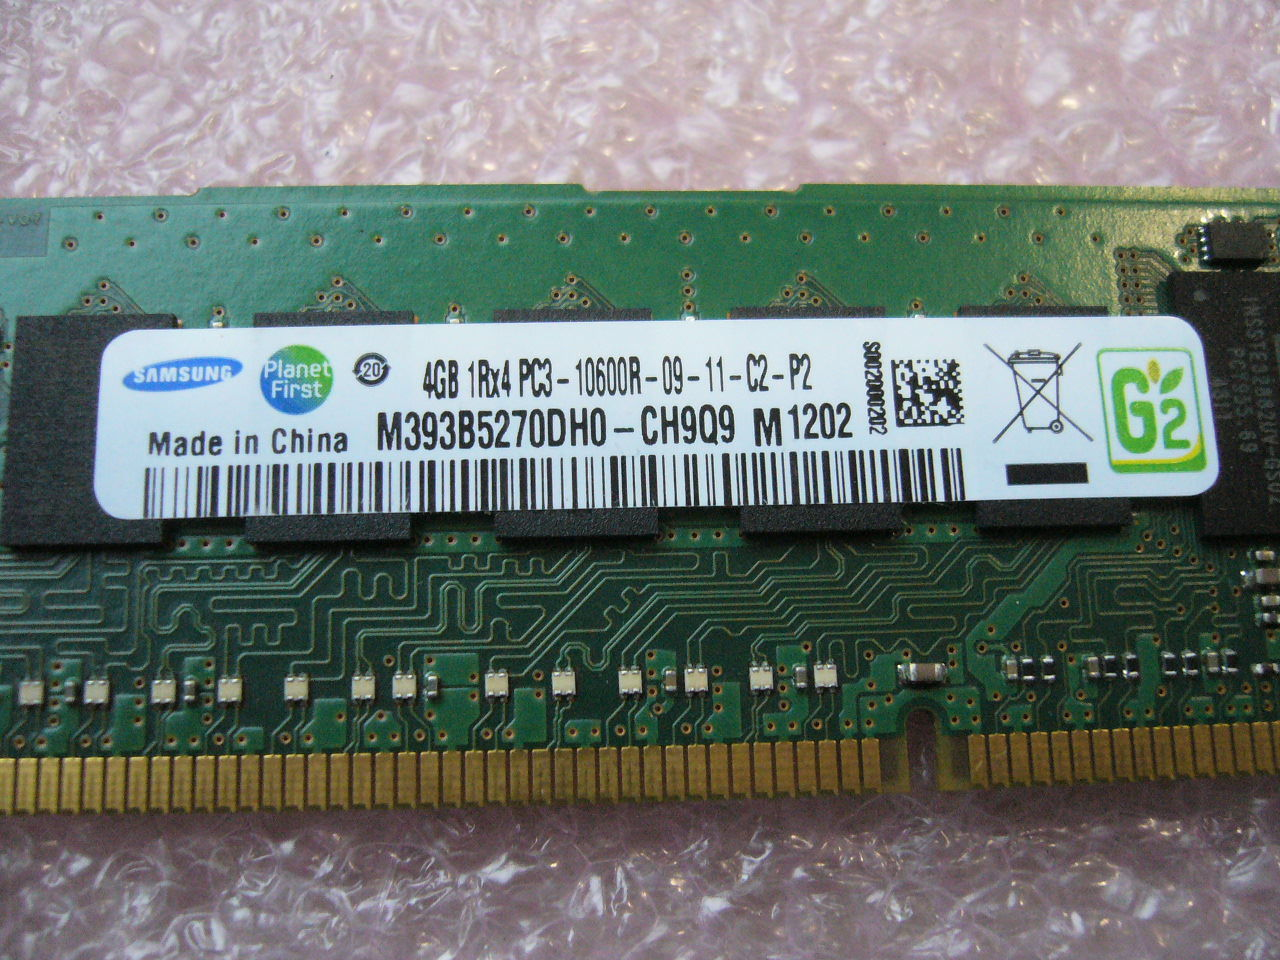 Menge 1x 4 GB DDR3 1Rx4 PC3-10600R ECC Registered Server-Speicher M393B5270DH0